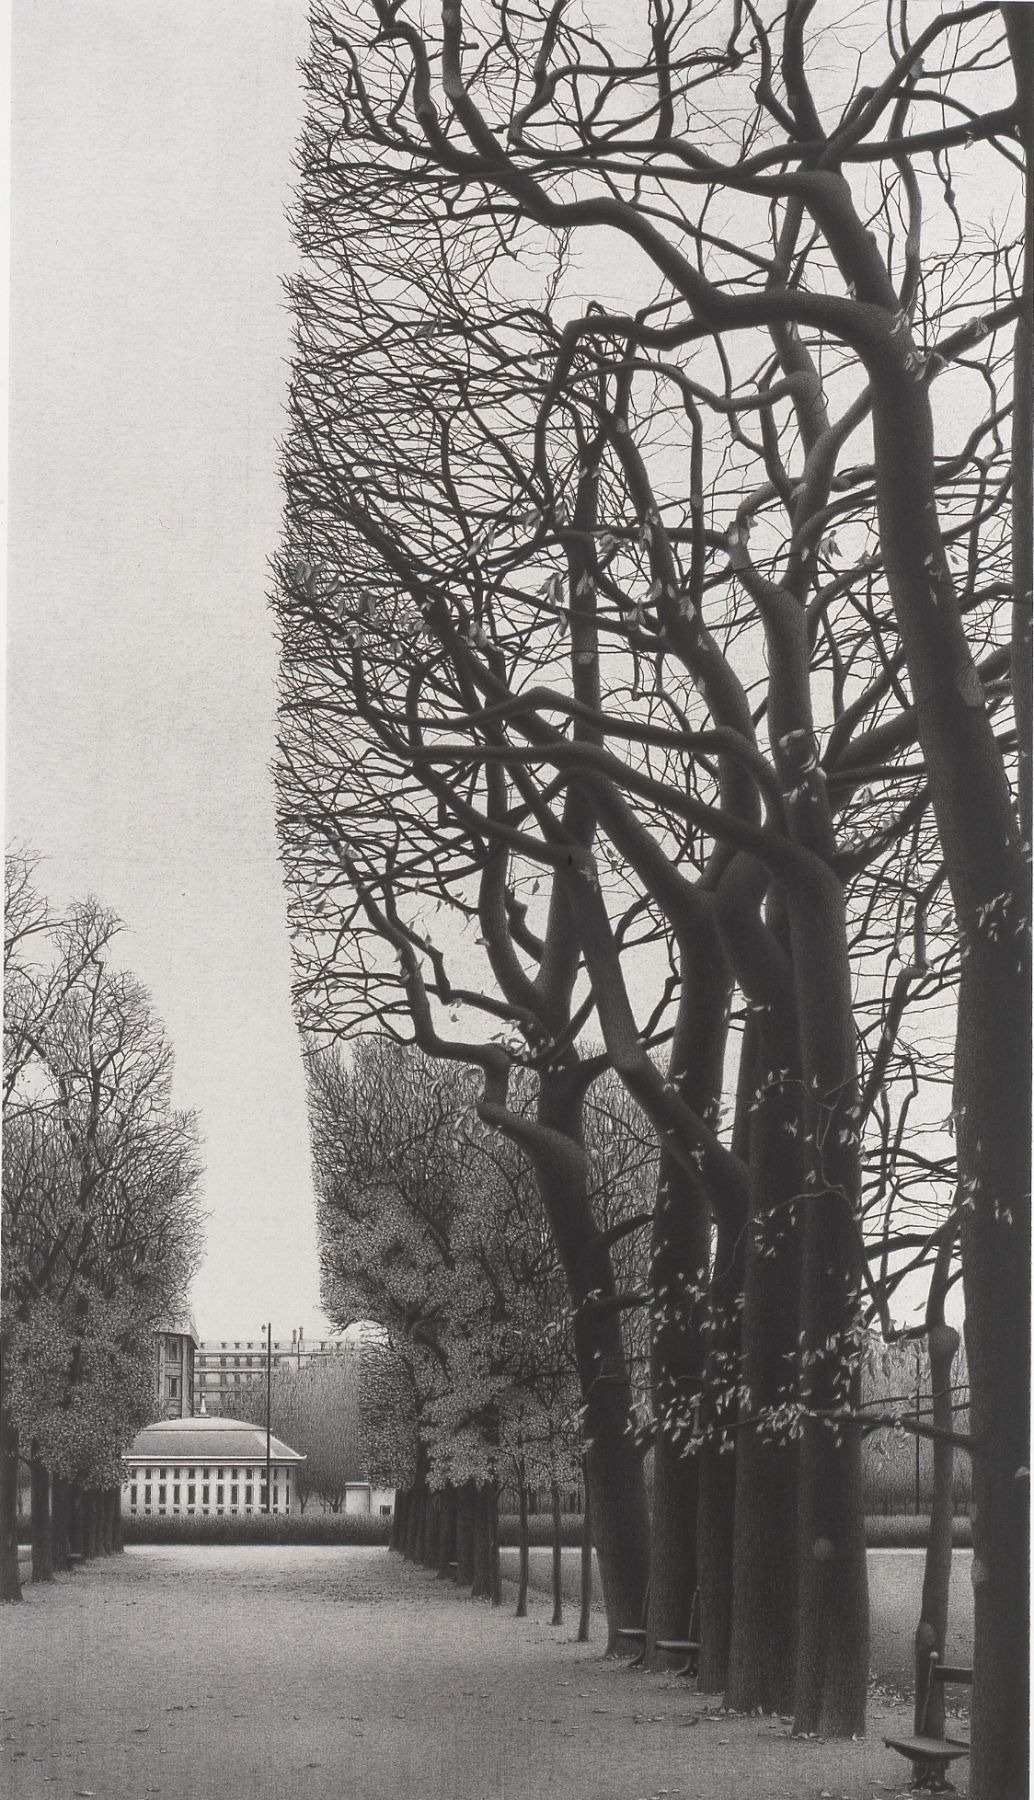 Anthony Mitri 6 Benches, Paris, 2004, charcoal on paper, 30 x 22 1/2 inches, Private Collection